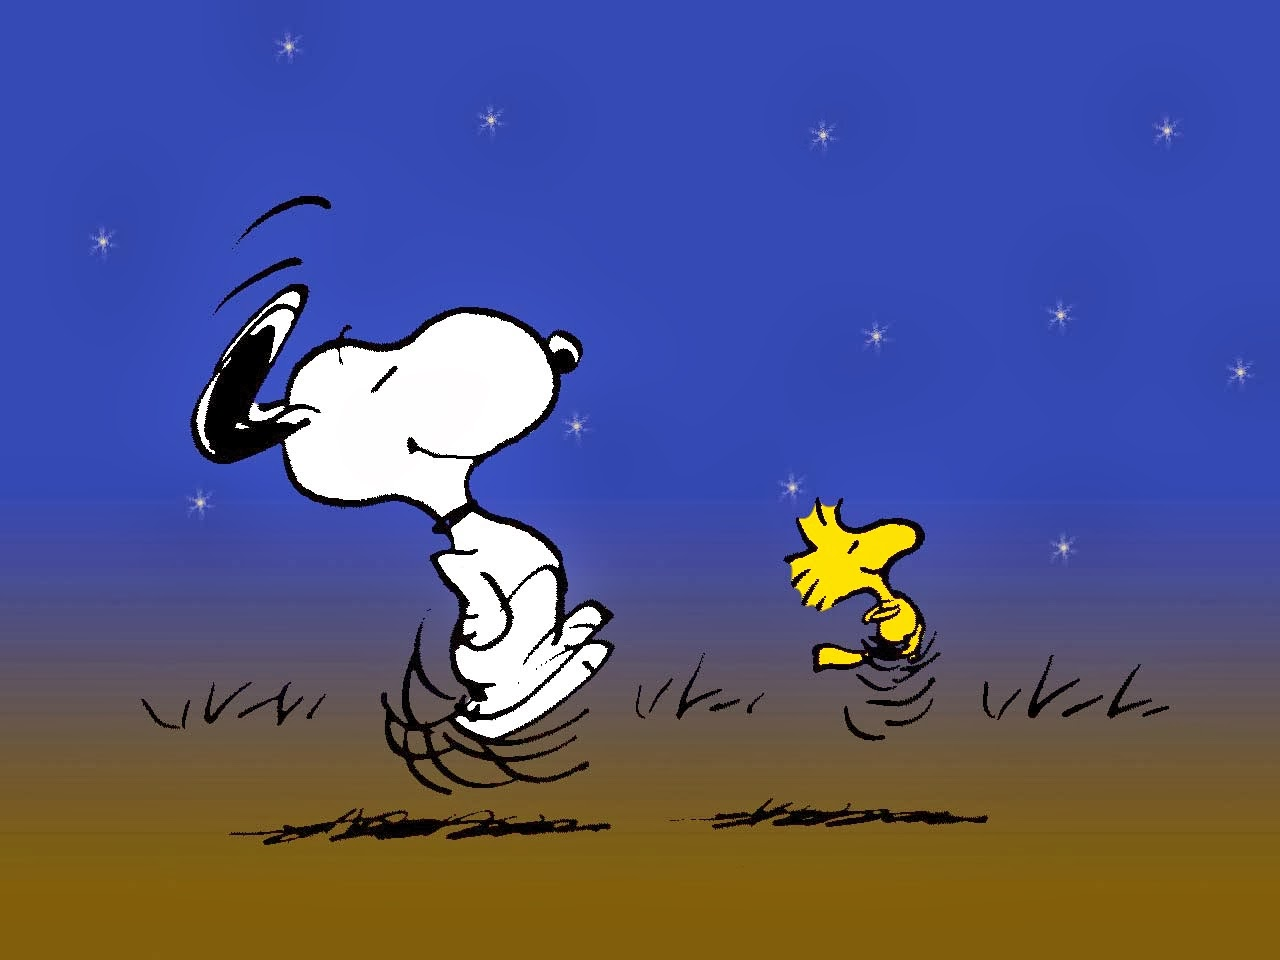 Snoopy and Charlie Brown Wallpaper 1280x960